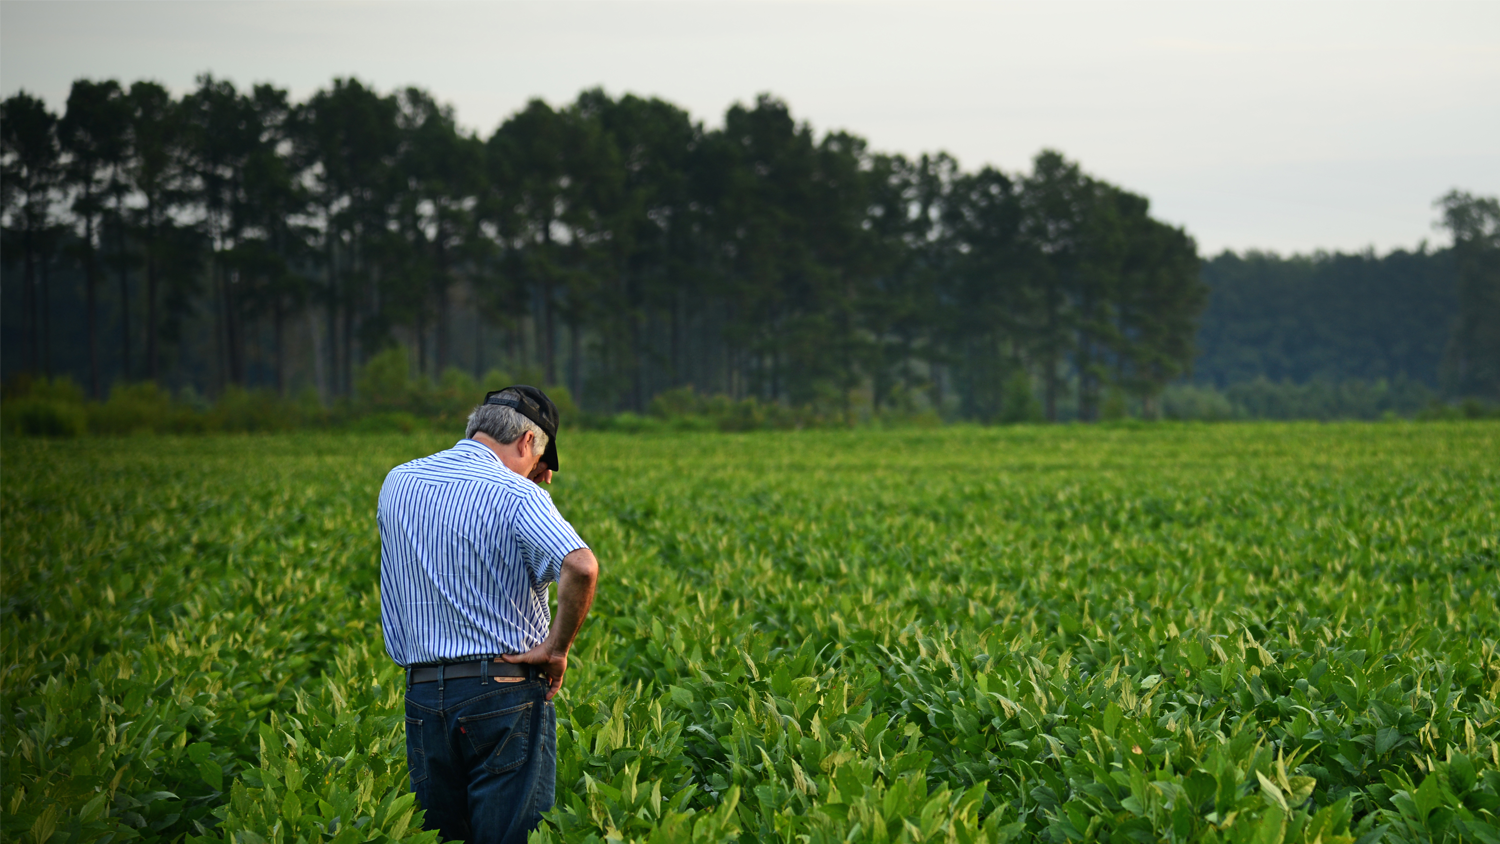 NC State University researcher examining a soybean field.